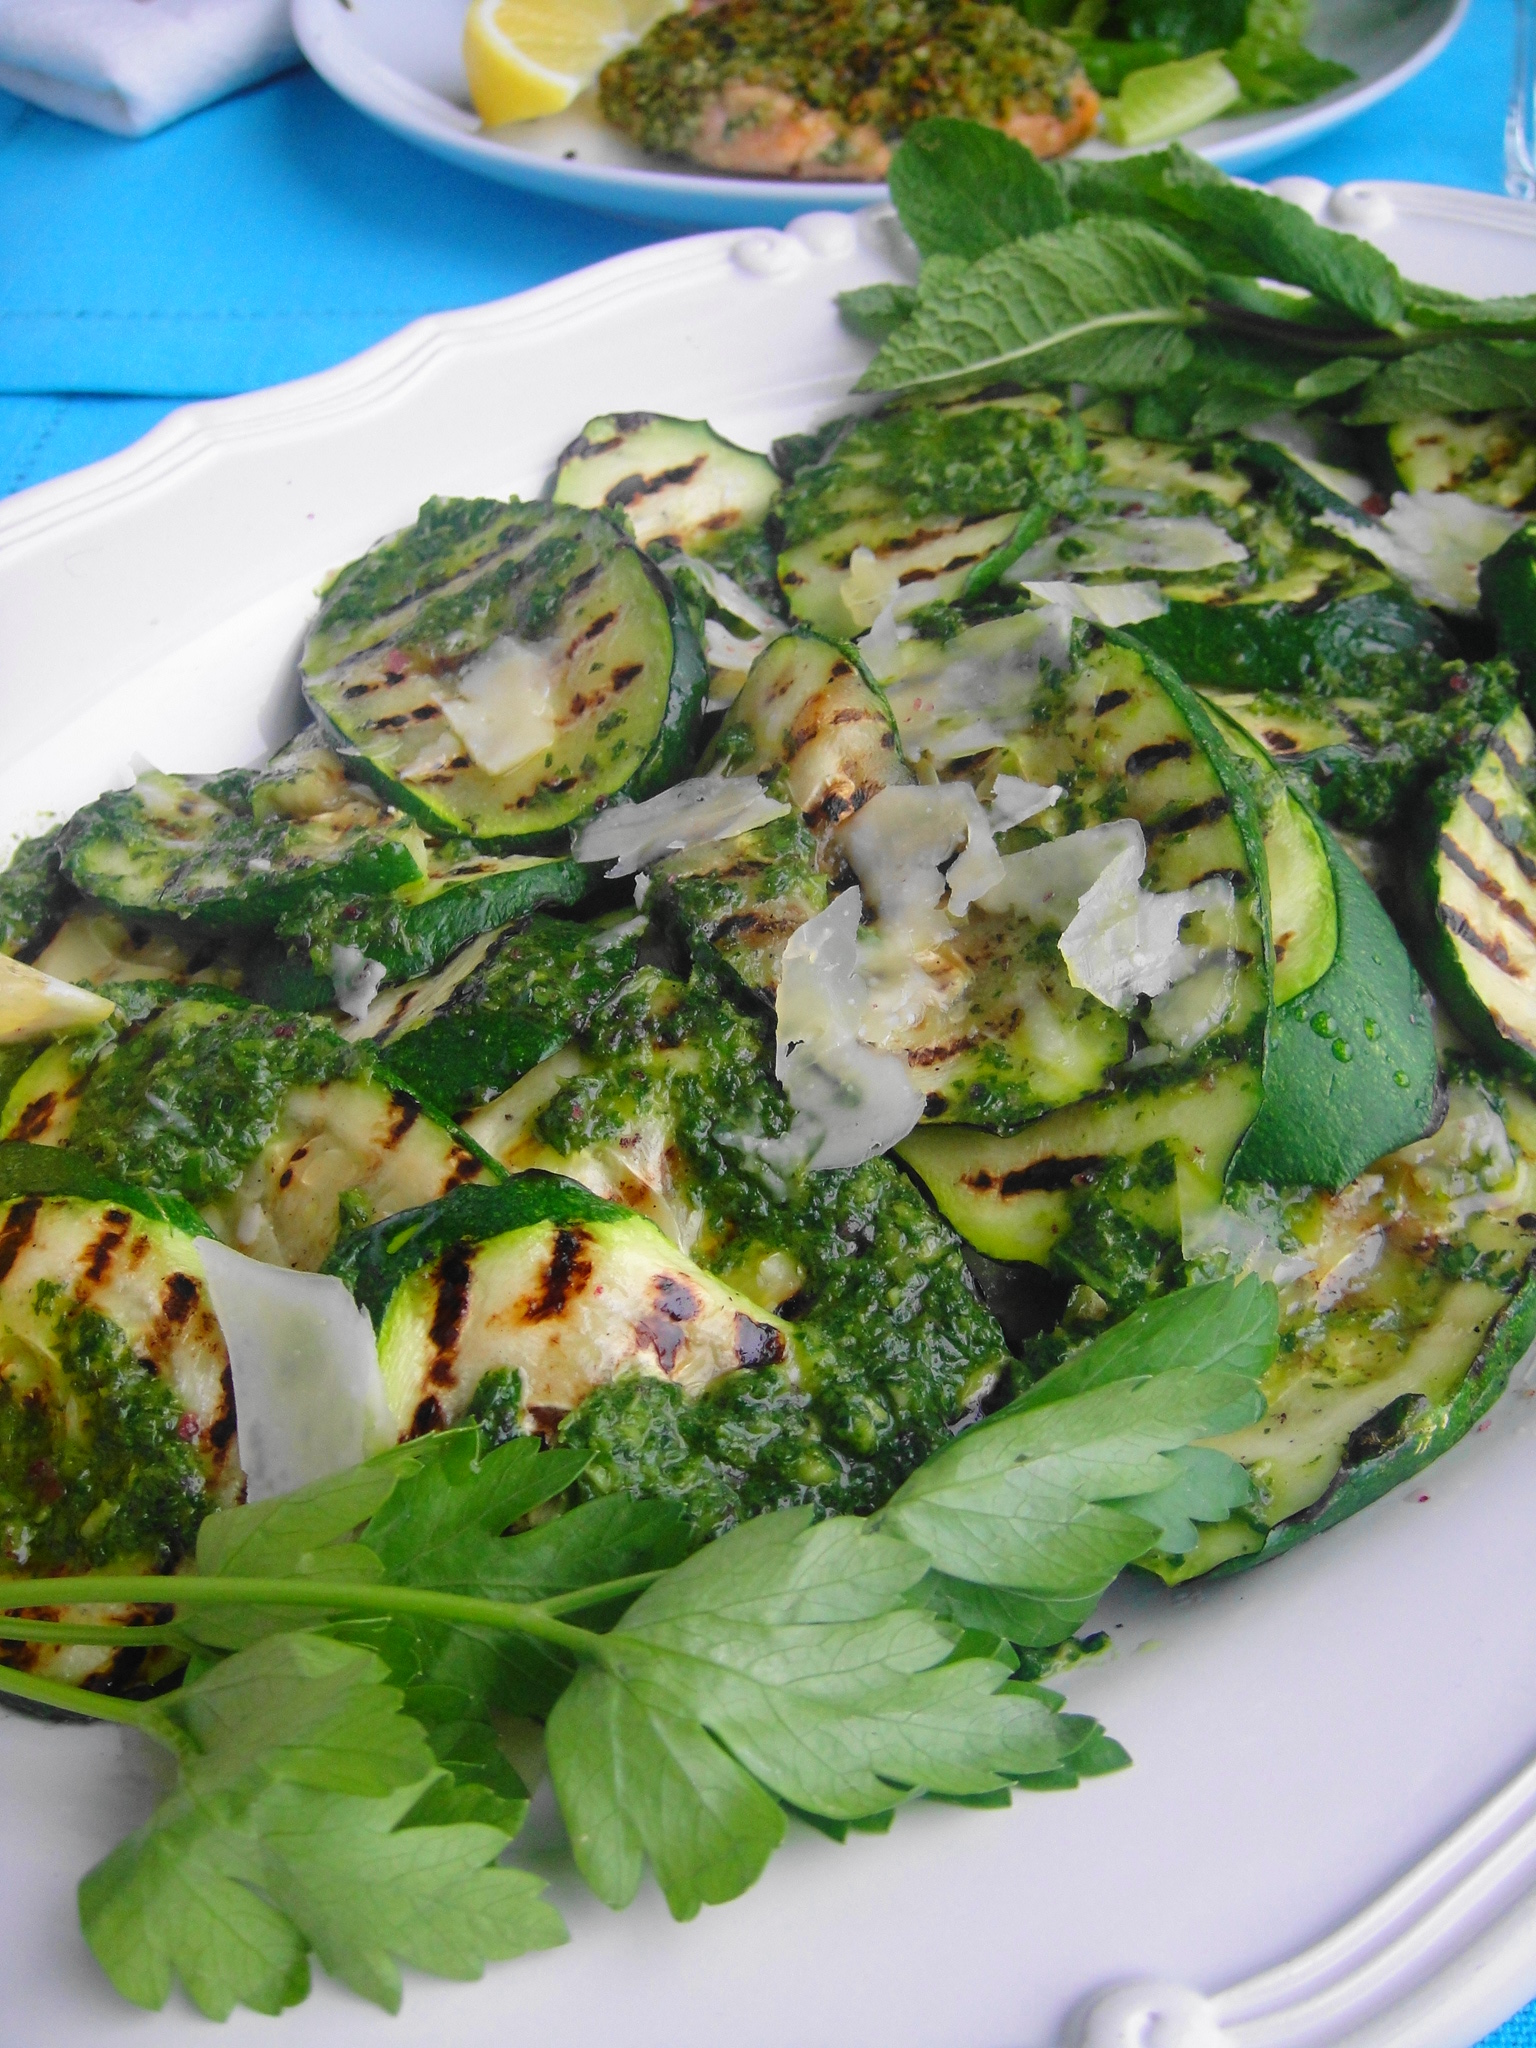 Grilled Zucchini with Herb Dressing